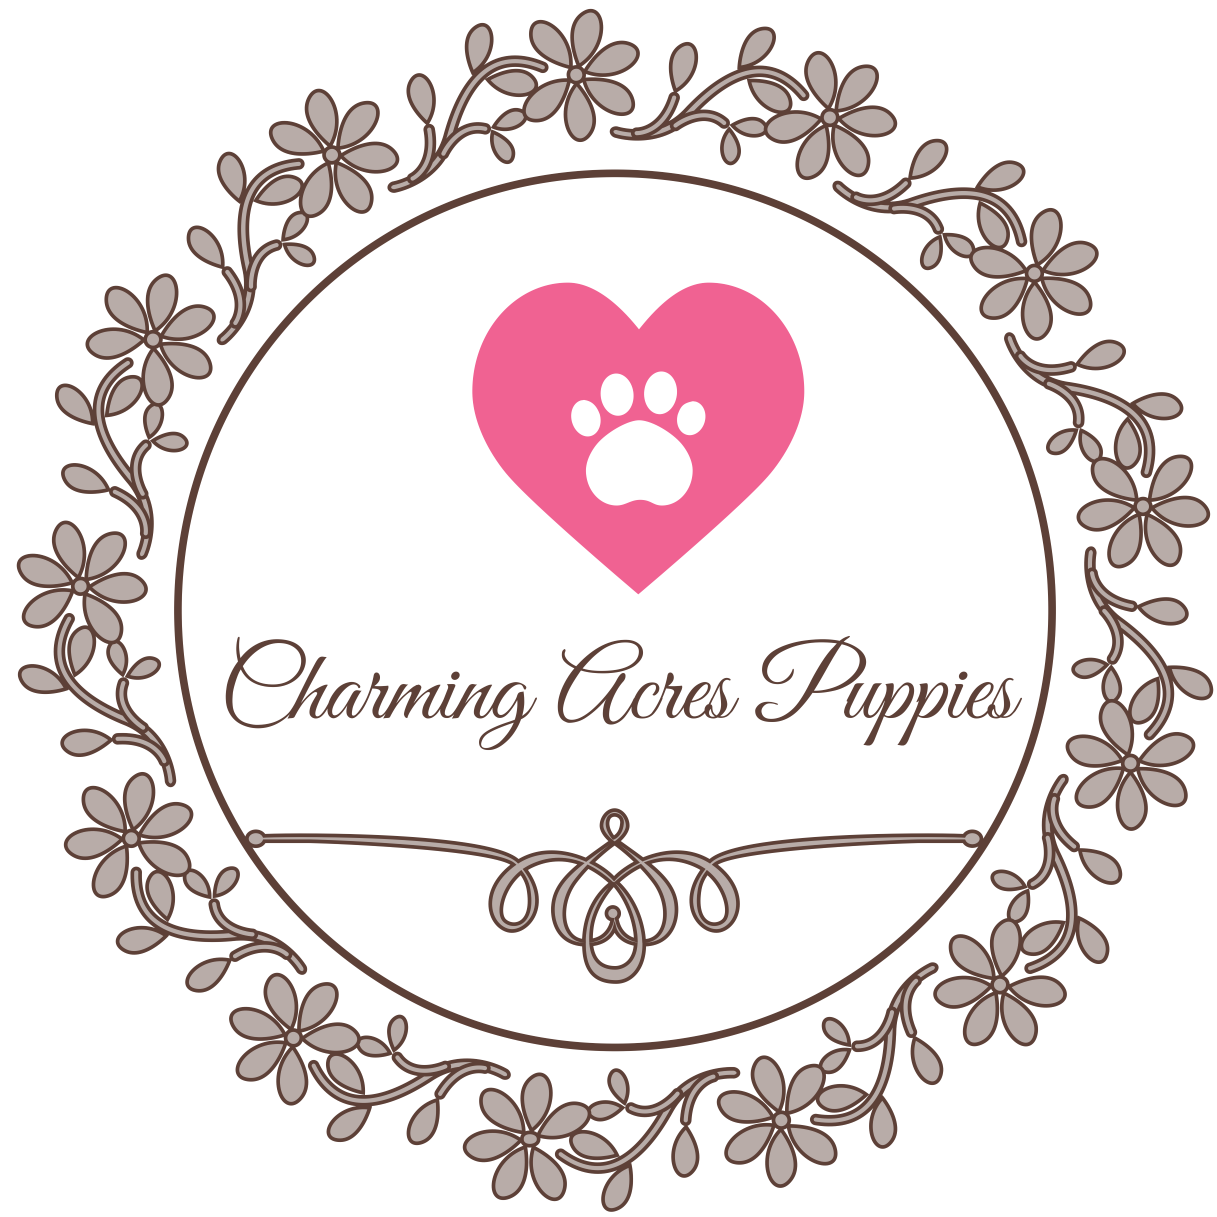 Charming Acres Puppies